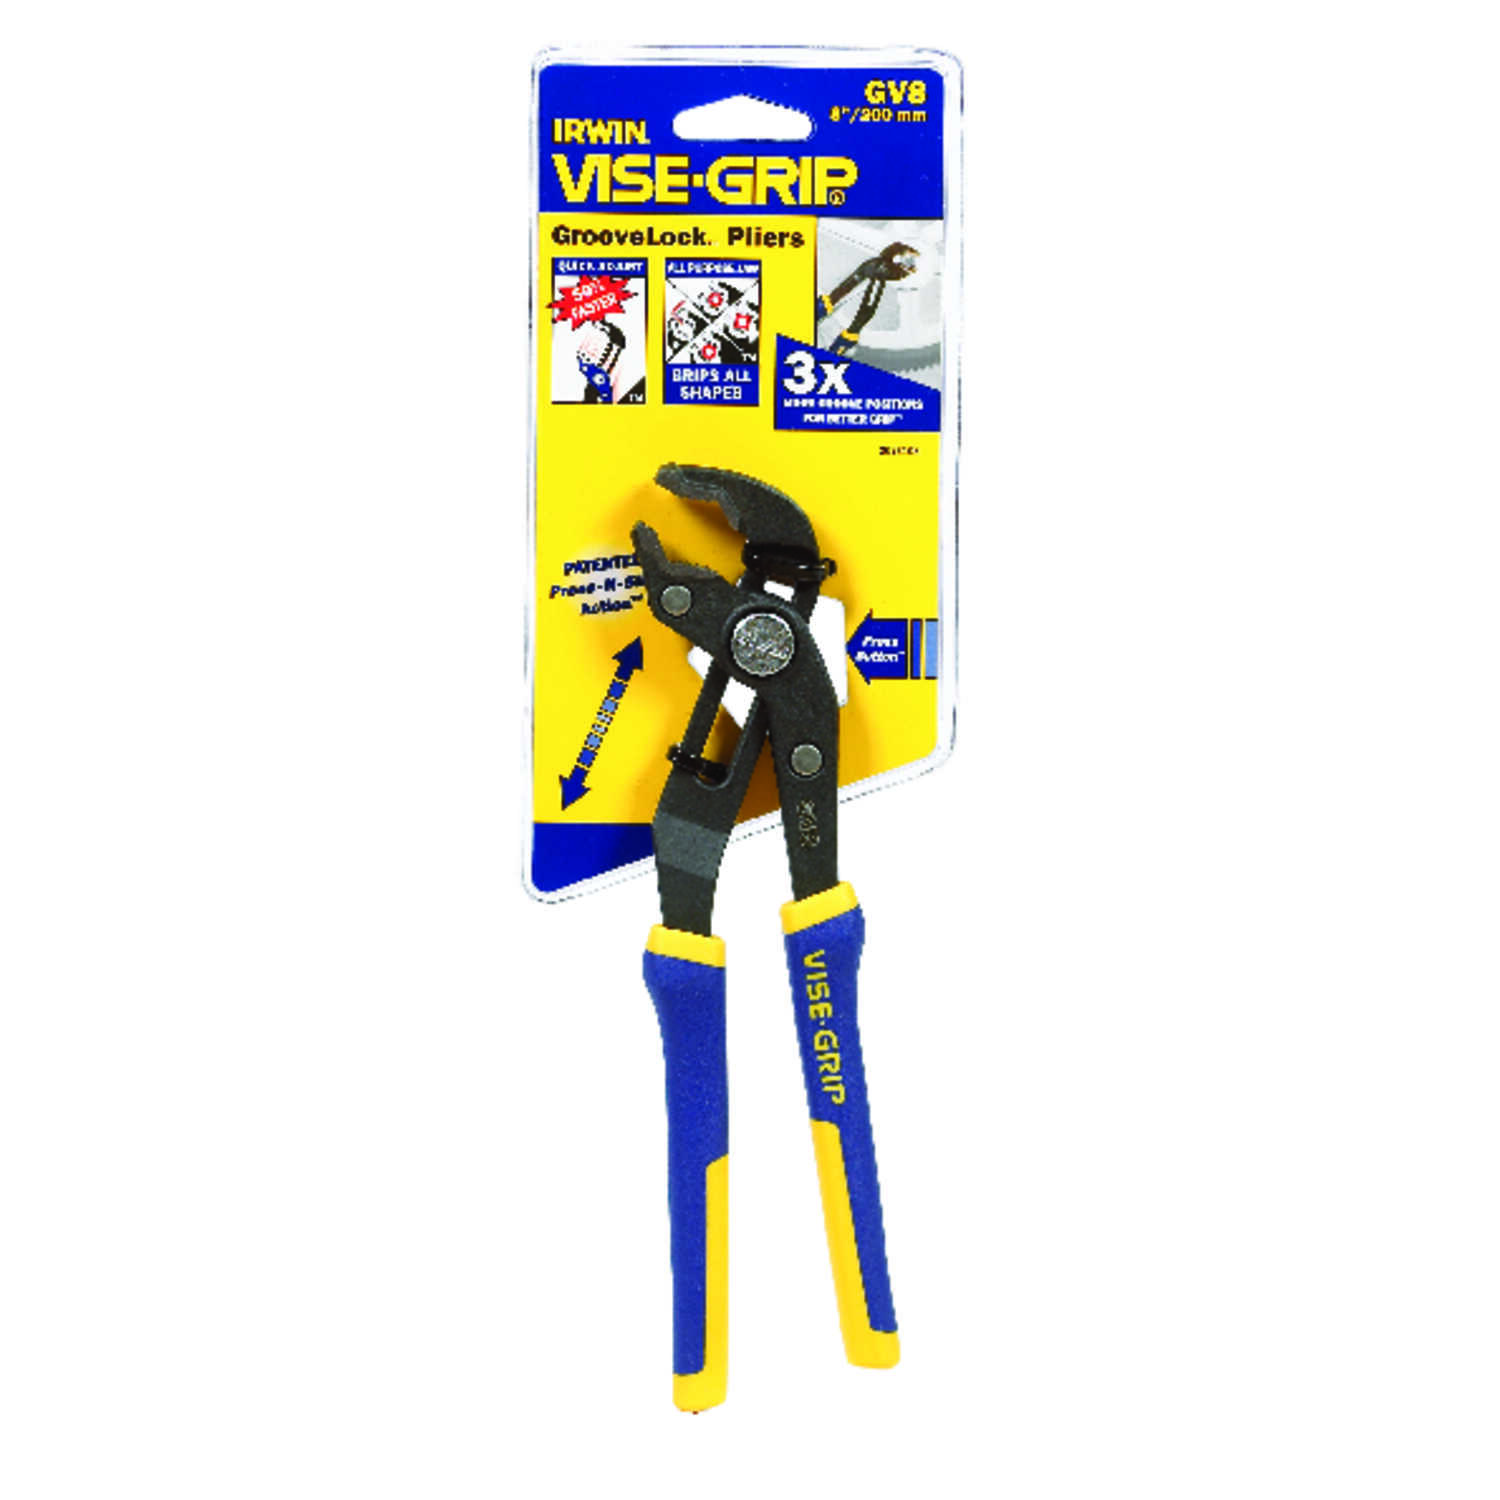 Irwin  Vise-Grip  8 in. Alloy Steel  Tongue and Groove Pliers  Blue/Yellow  1 pk